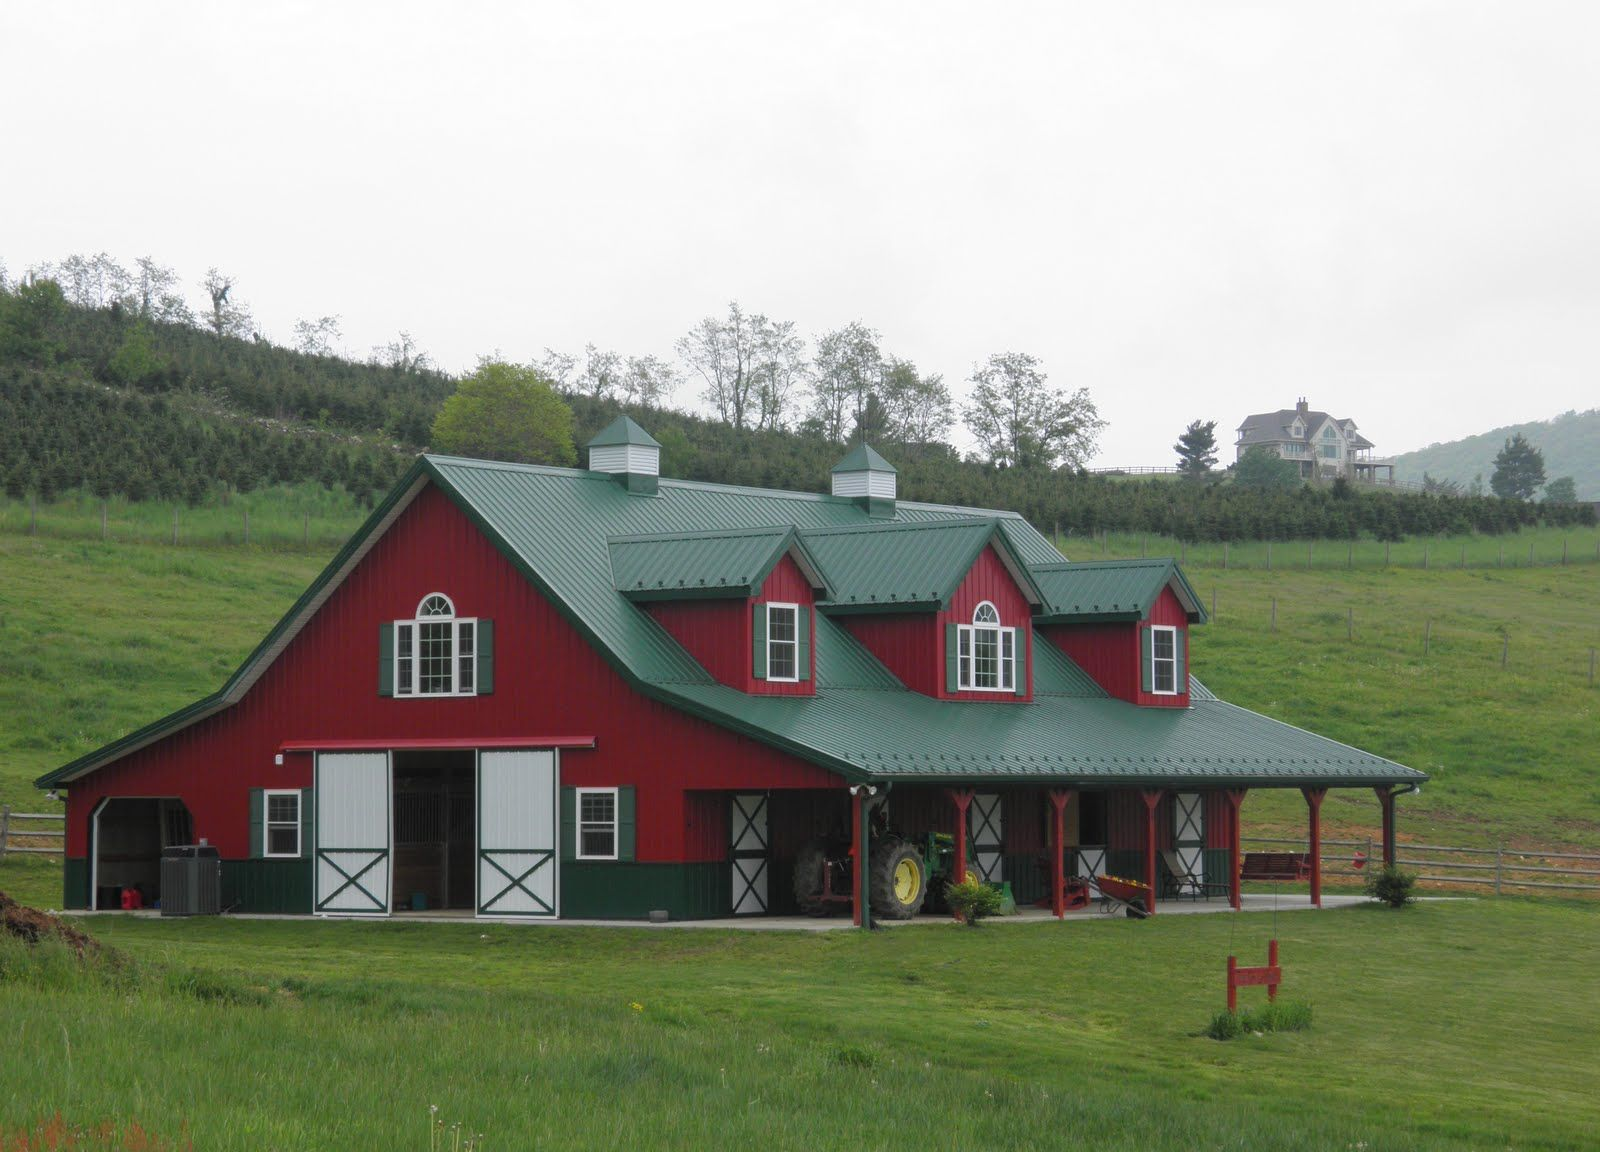 superb house plans that look like barns #10: house that looks like red barn images | At Home in the High Country